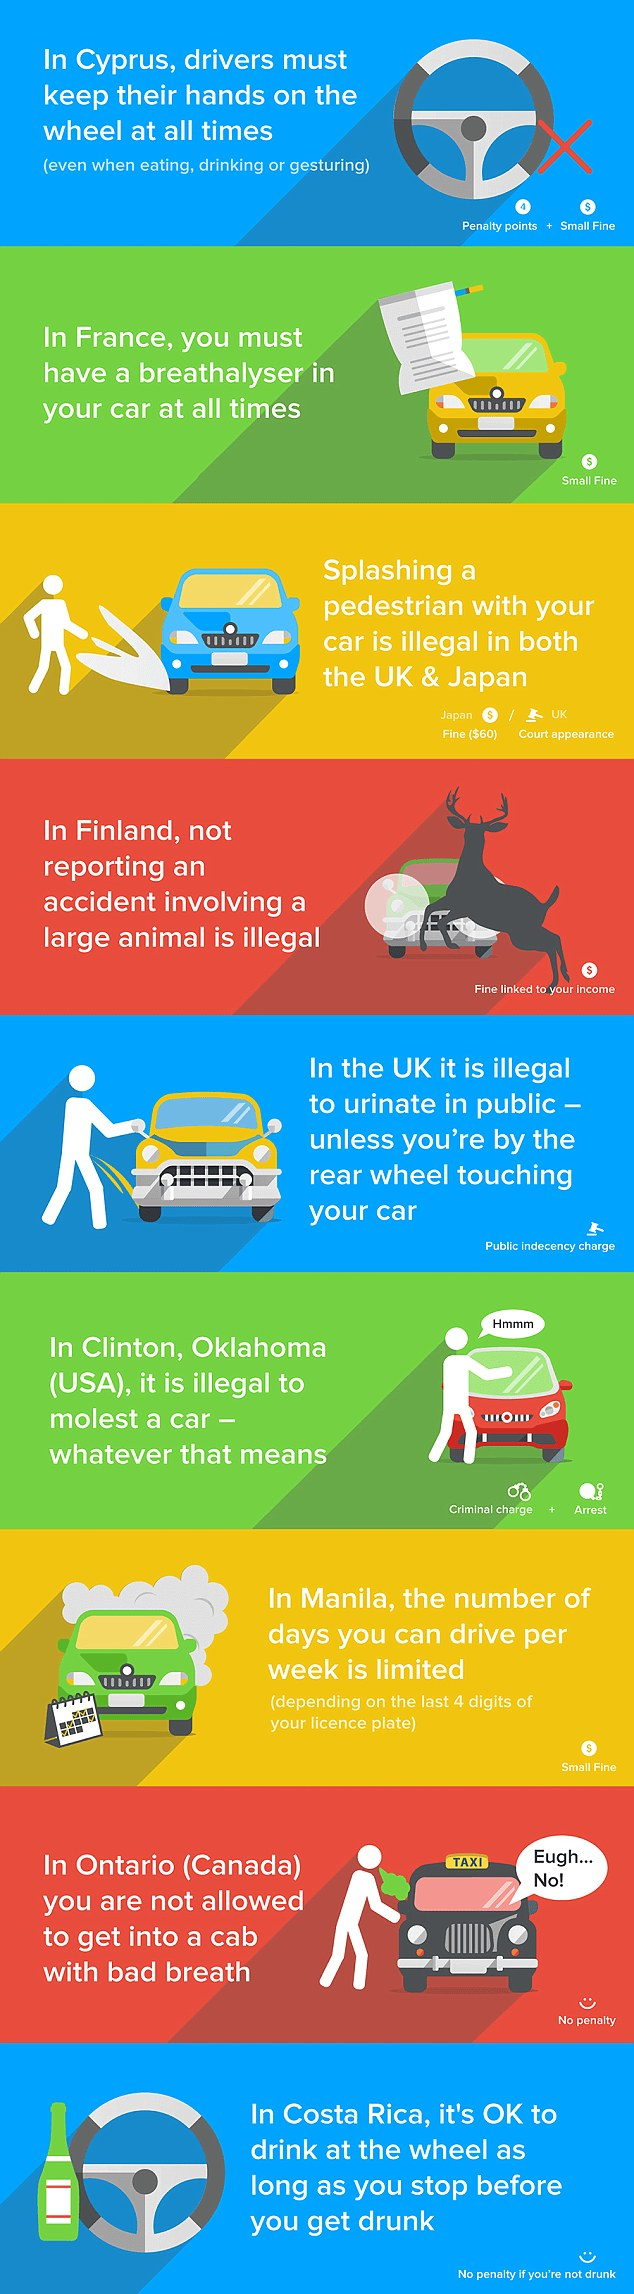 In Finland, a driver who has an accident involving a large animal and does not report it will be issued a fine based on their income